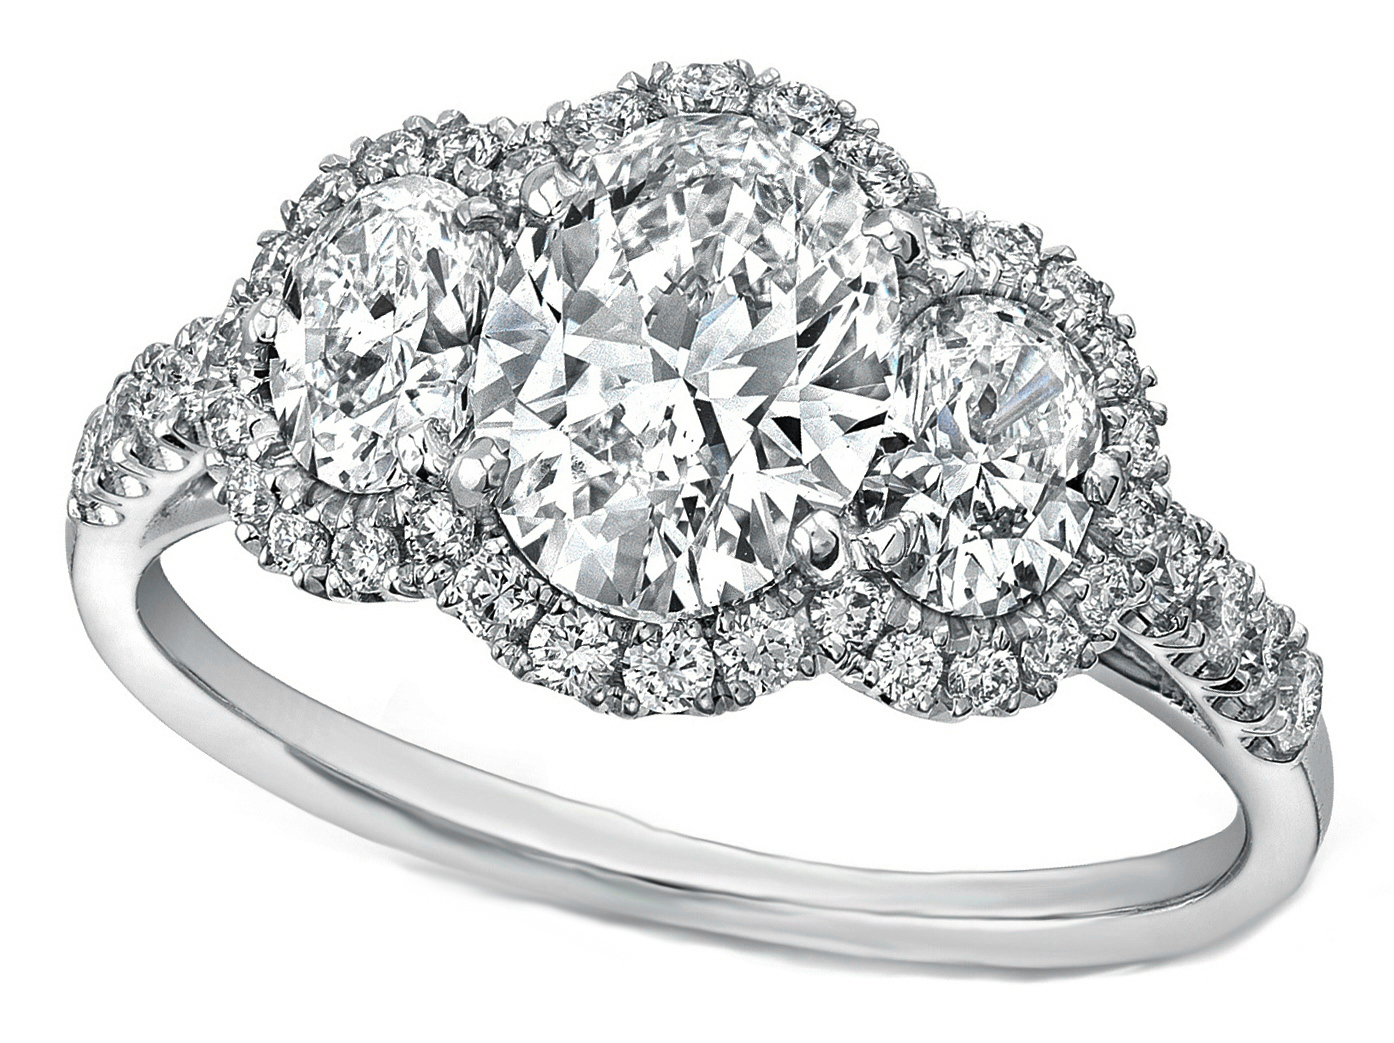 Three Stone Oval Diamond Halo Engagement Ring 1.10 TCW in 14K White Gold